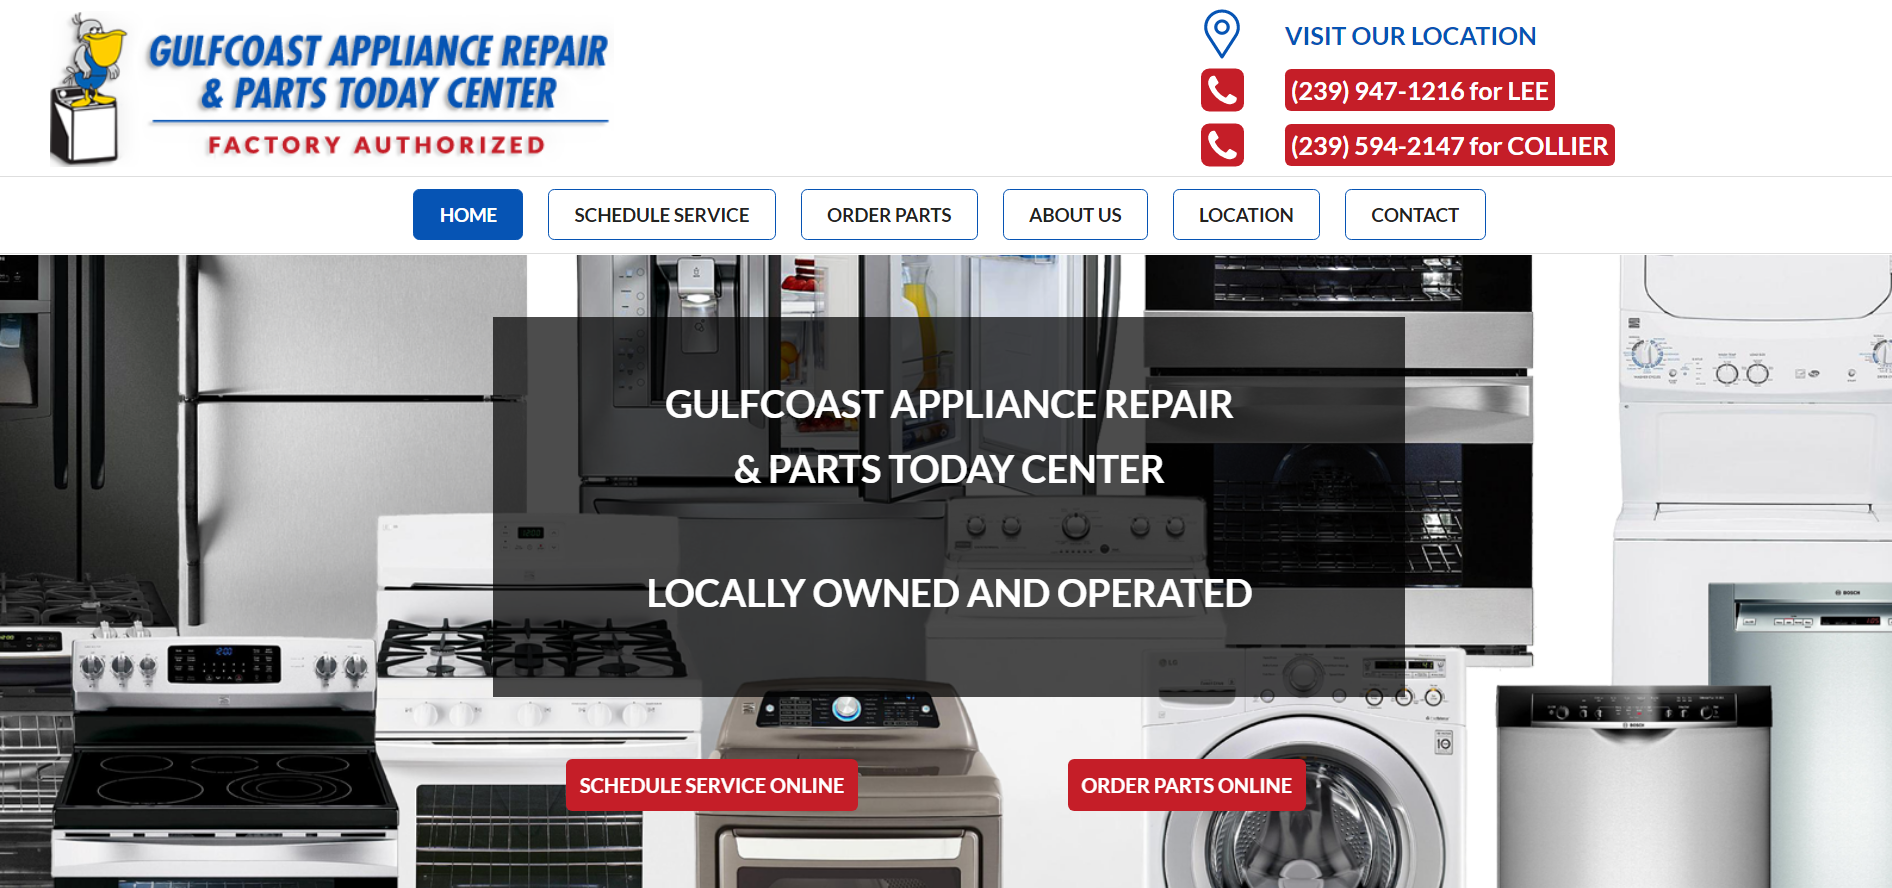 gulfcoast appliance repair - web design by alex belan